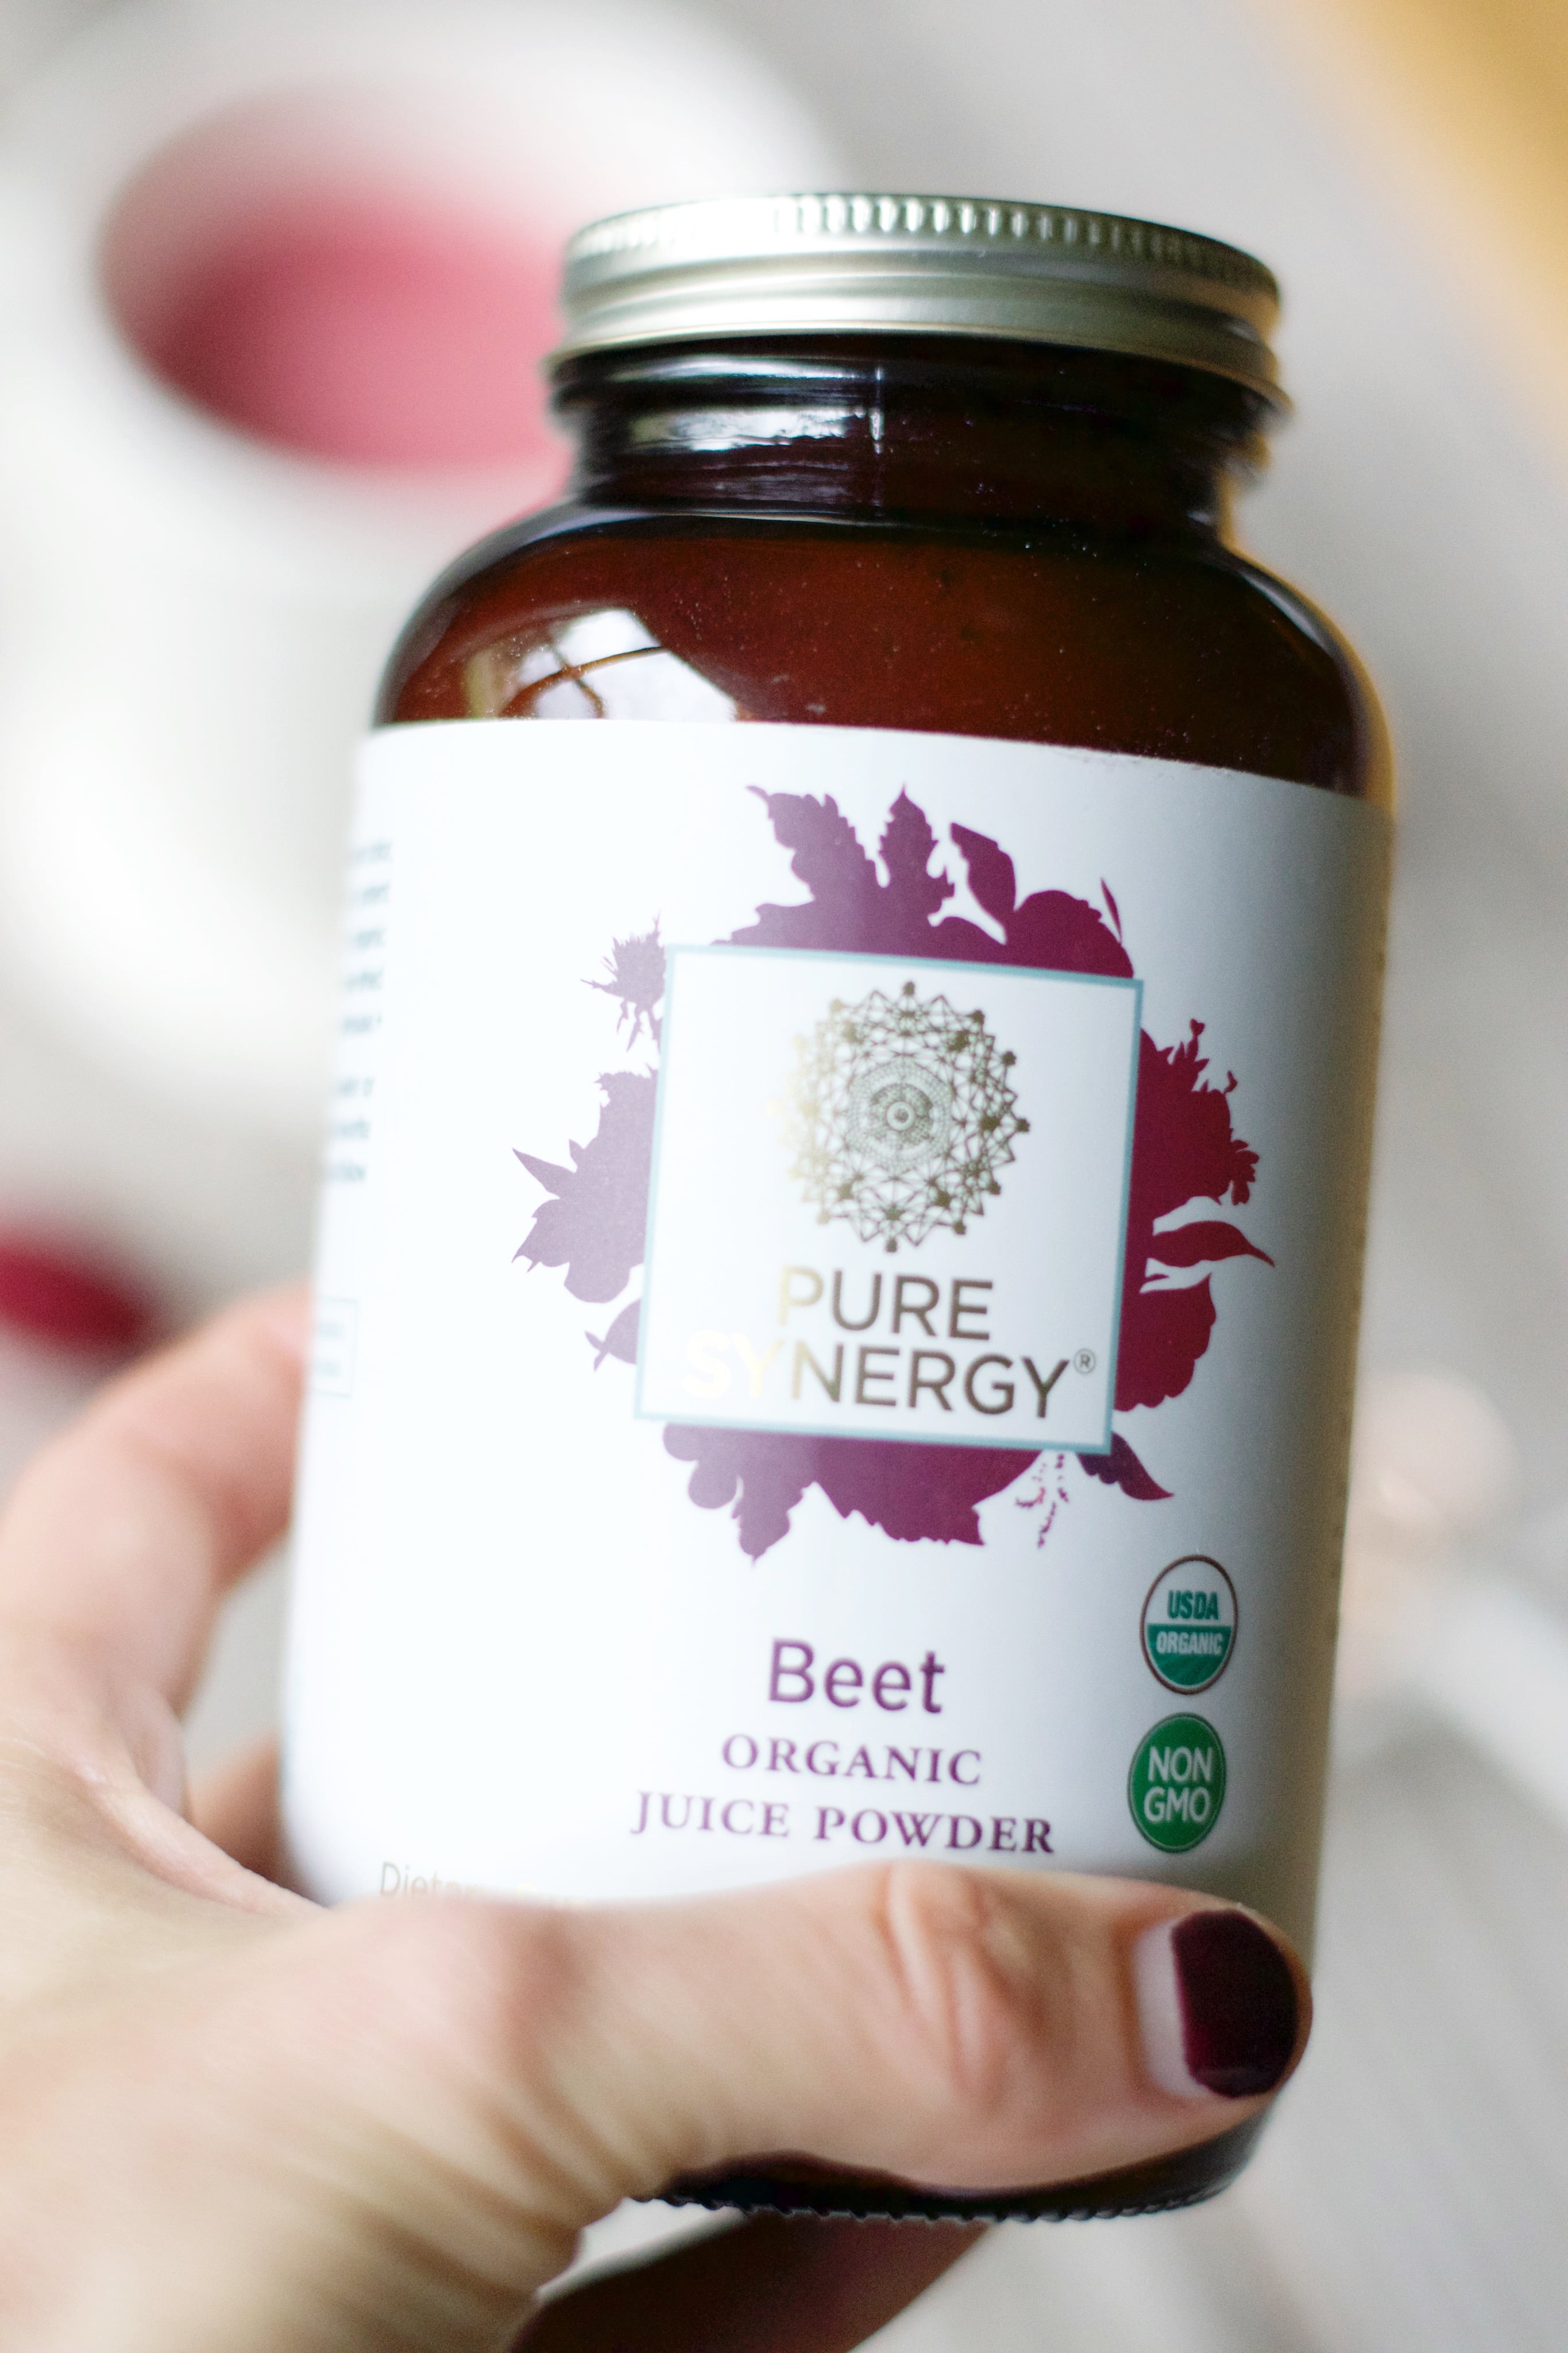 Pure Synergy Organic Beet Juice Powder